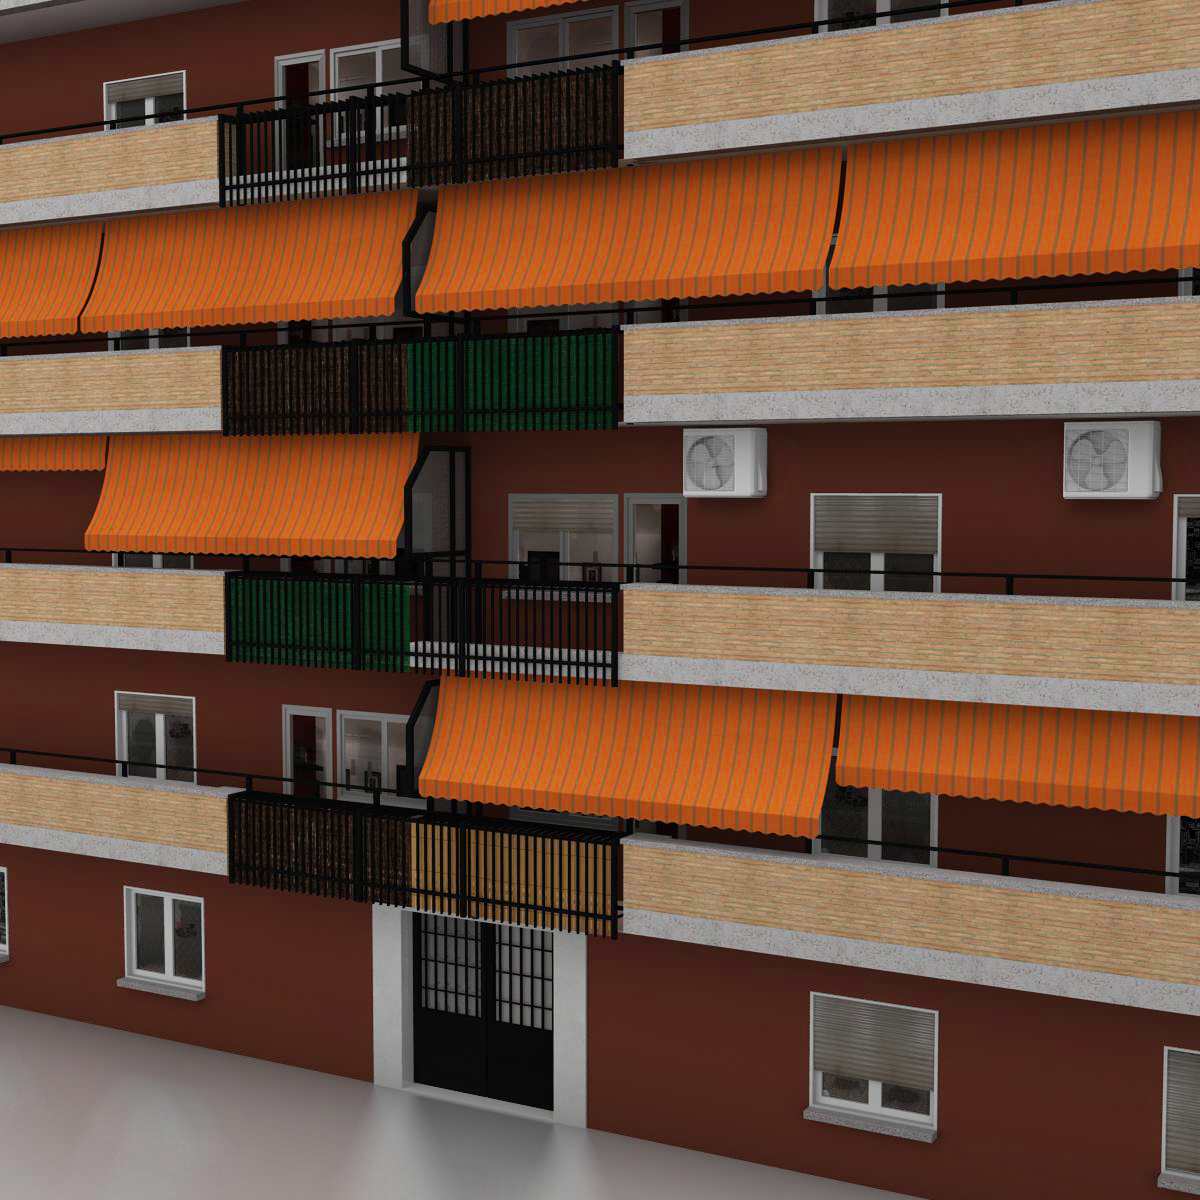 typical spanish building 3d model 3ds max fbx c4d ma mb obj 159485